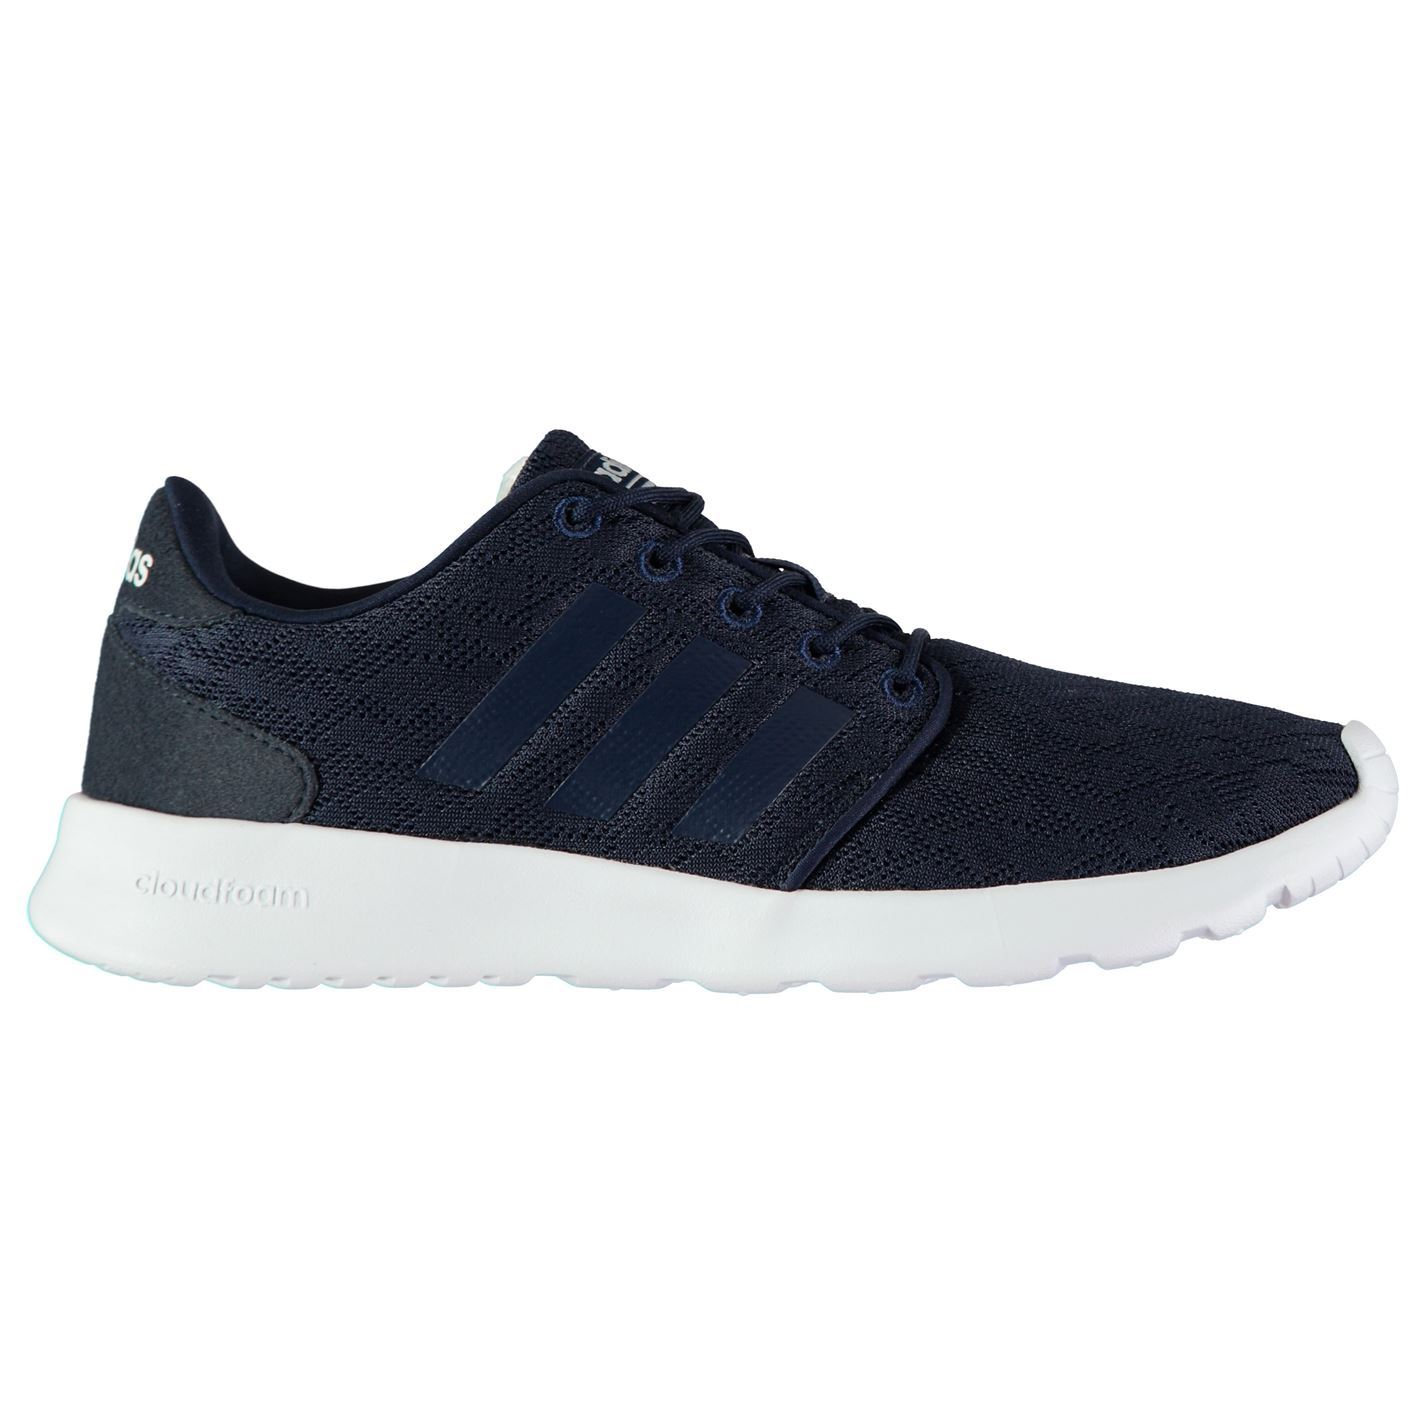 ... adidas Cloudfoam Racer Trainers Womens Navy White Sports Trainers  Sneakers ... d8bb0159c